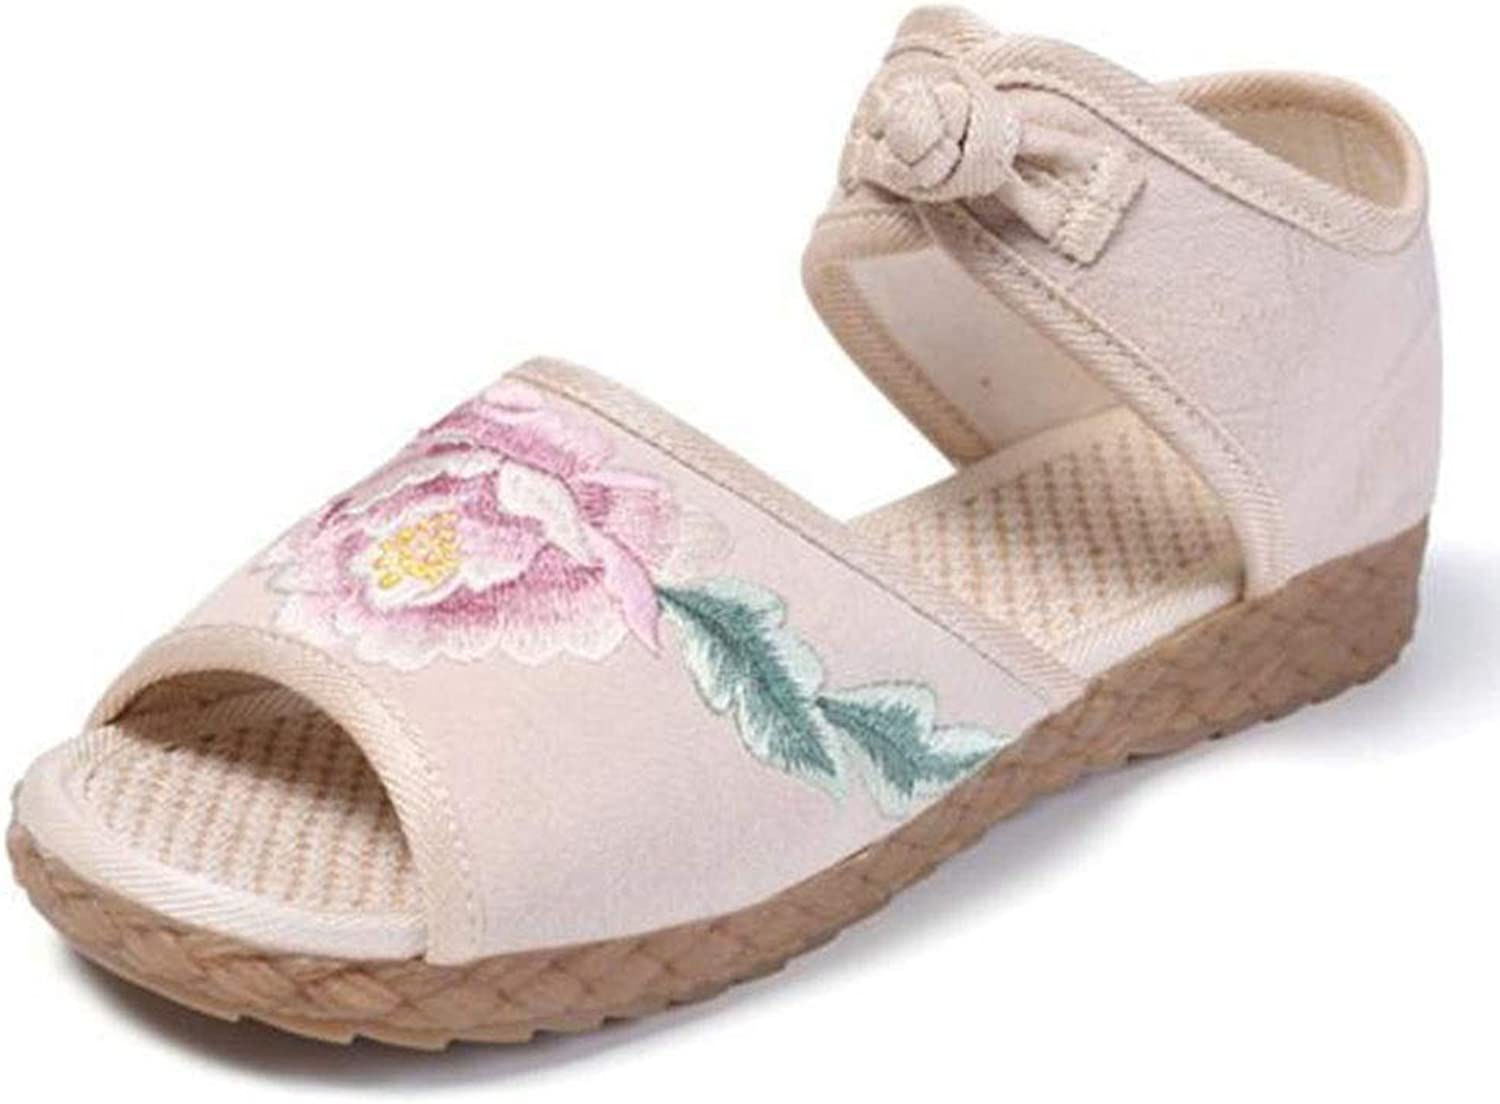 Summer Old Beijing Cloth shoes Fish Mouth Sandals Flat with Buckle National Wind Embroidered Women's shoes (color   Beige, Size   245)